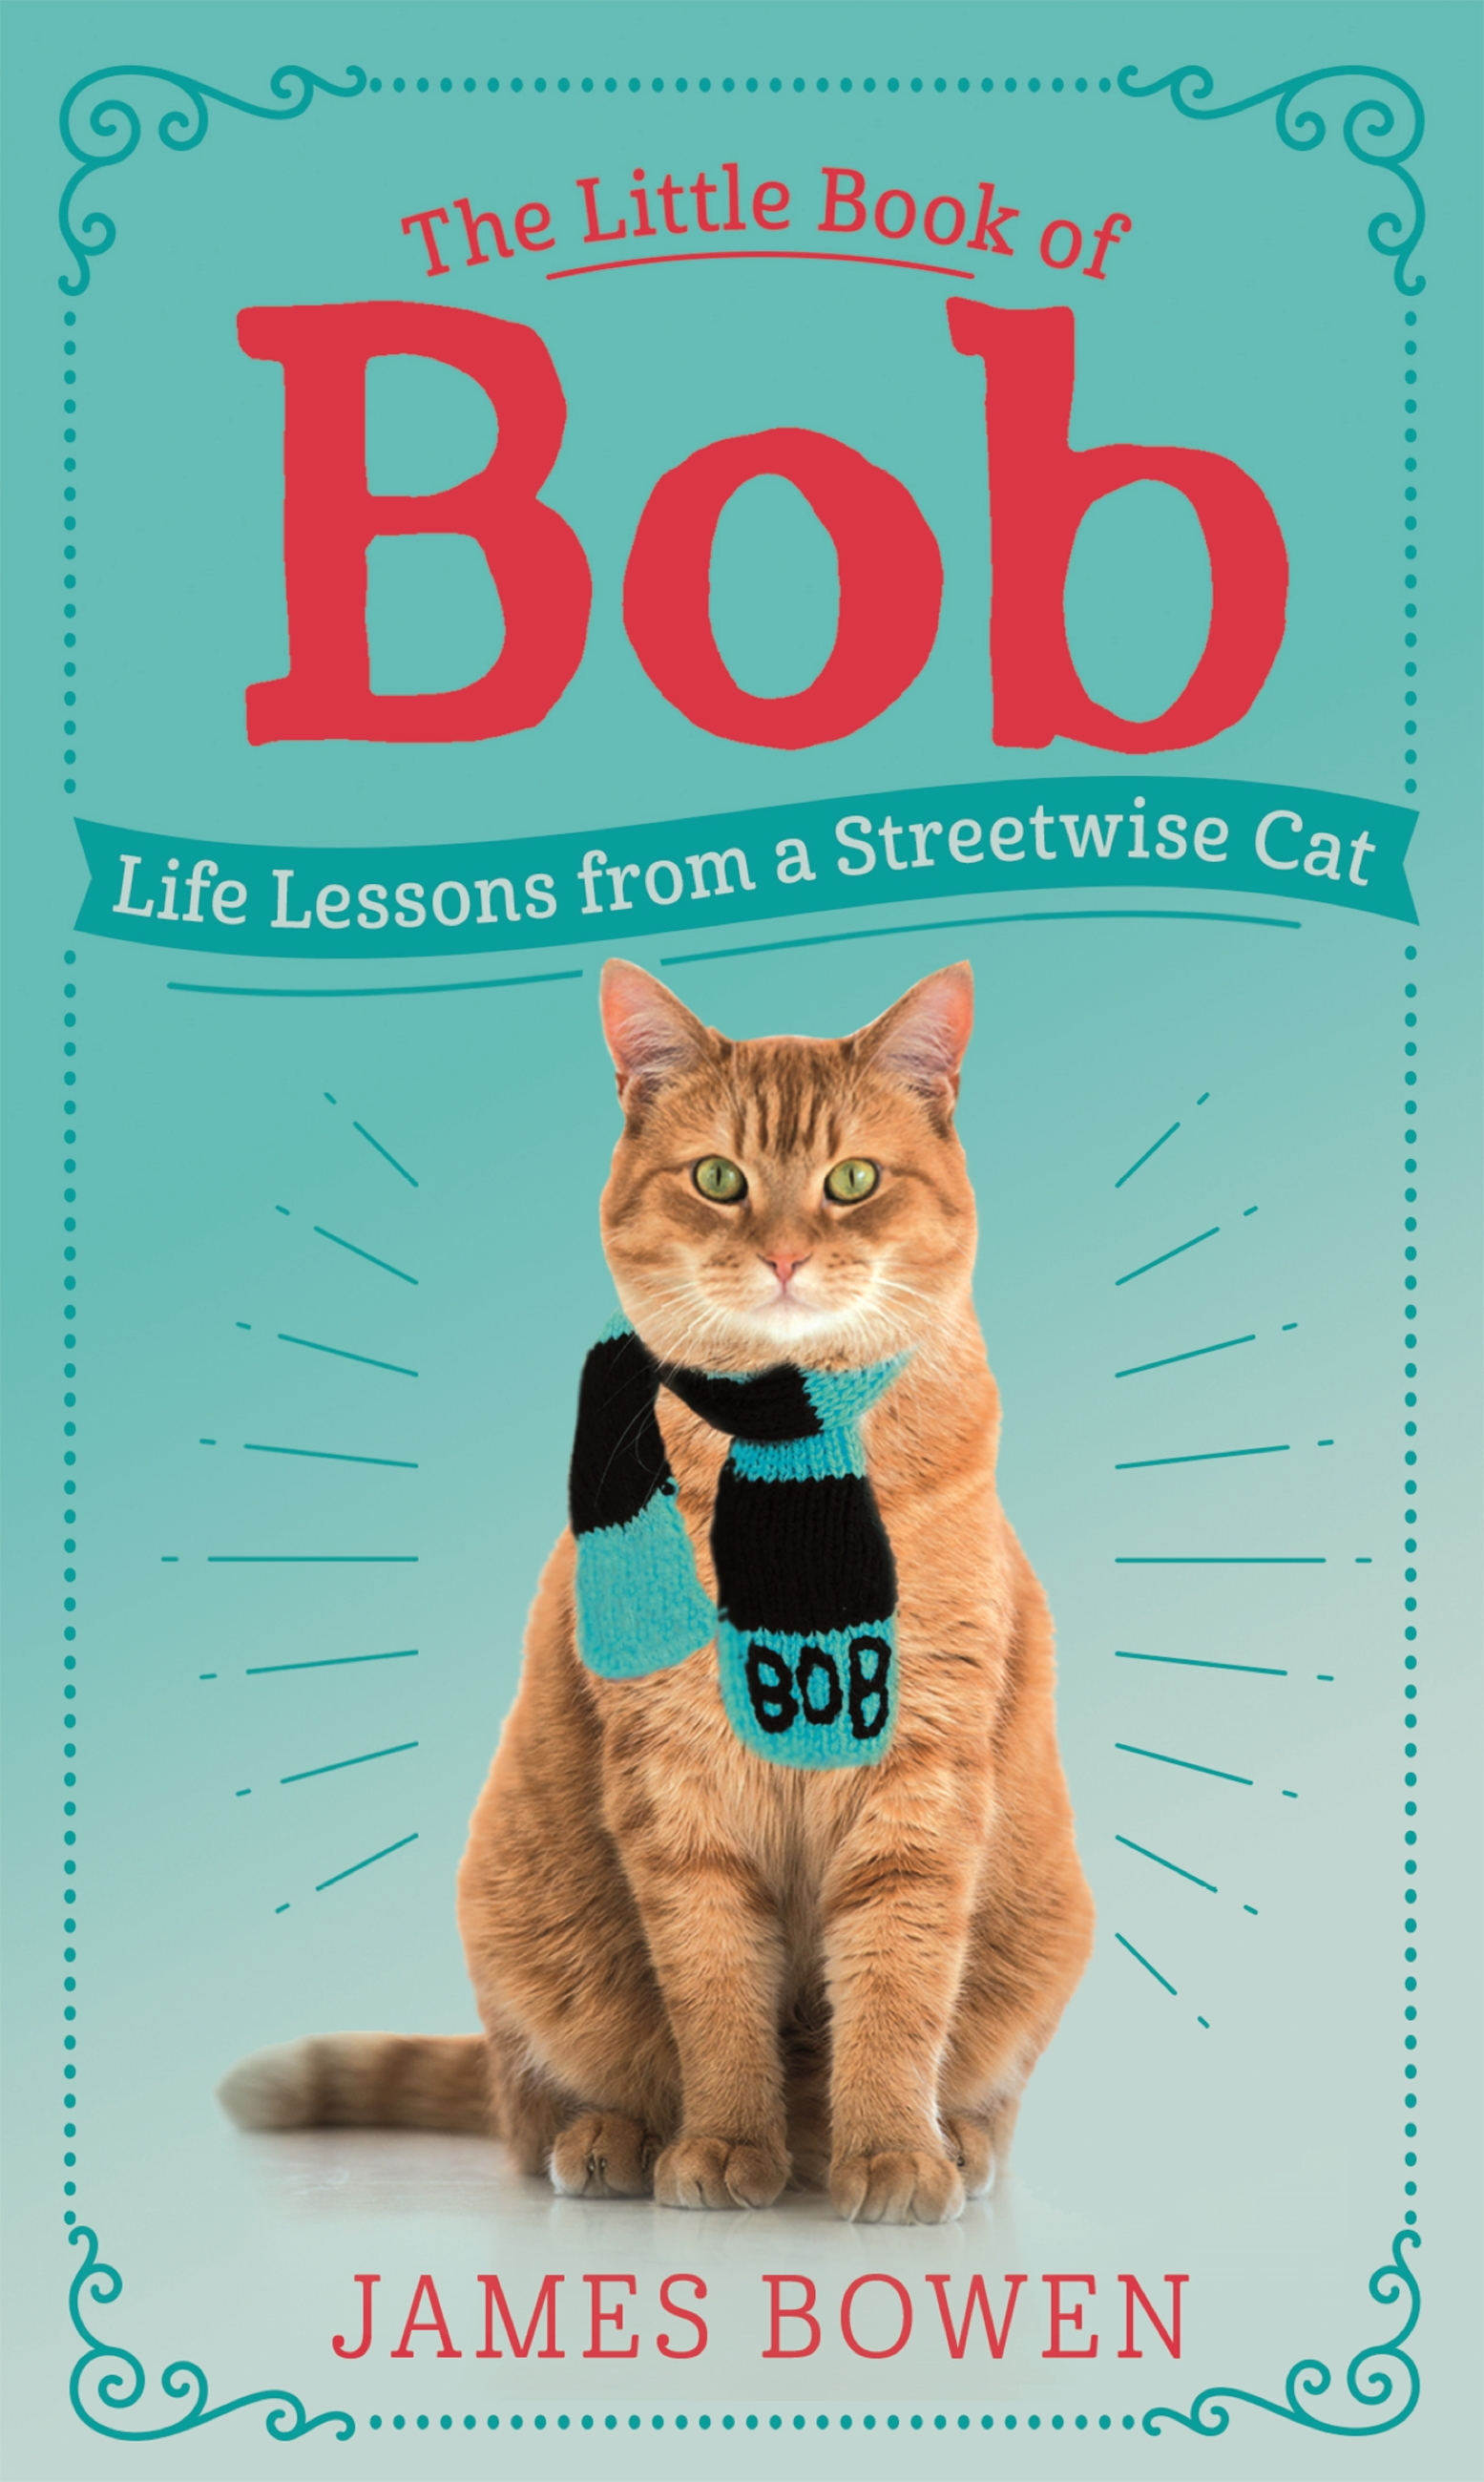 The Little Book of Bob